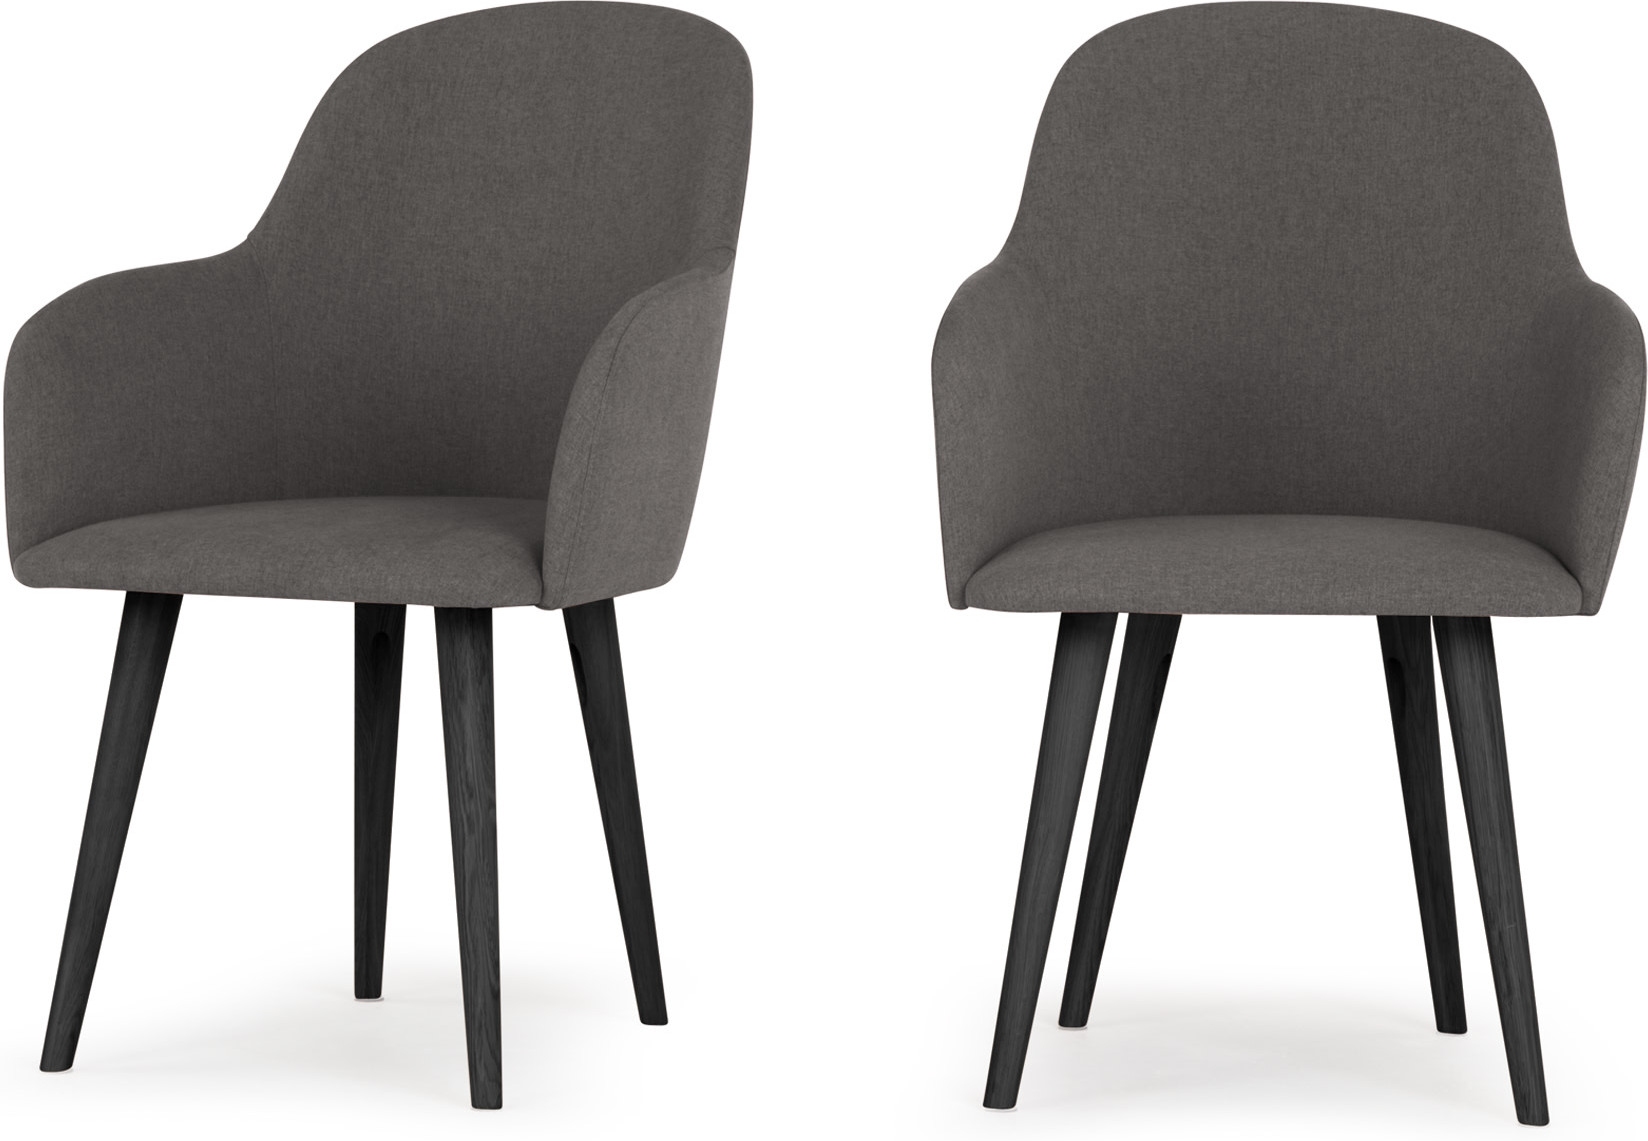 2 x Stig High Back Carver Dining Chairs Manhattan Grey and Black